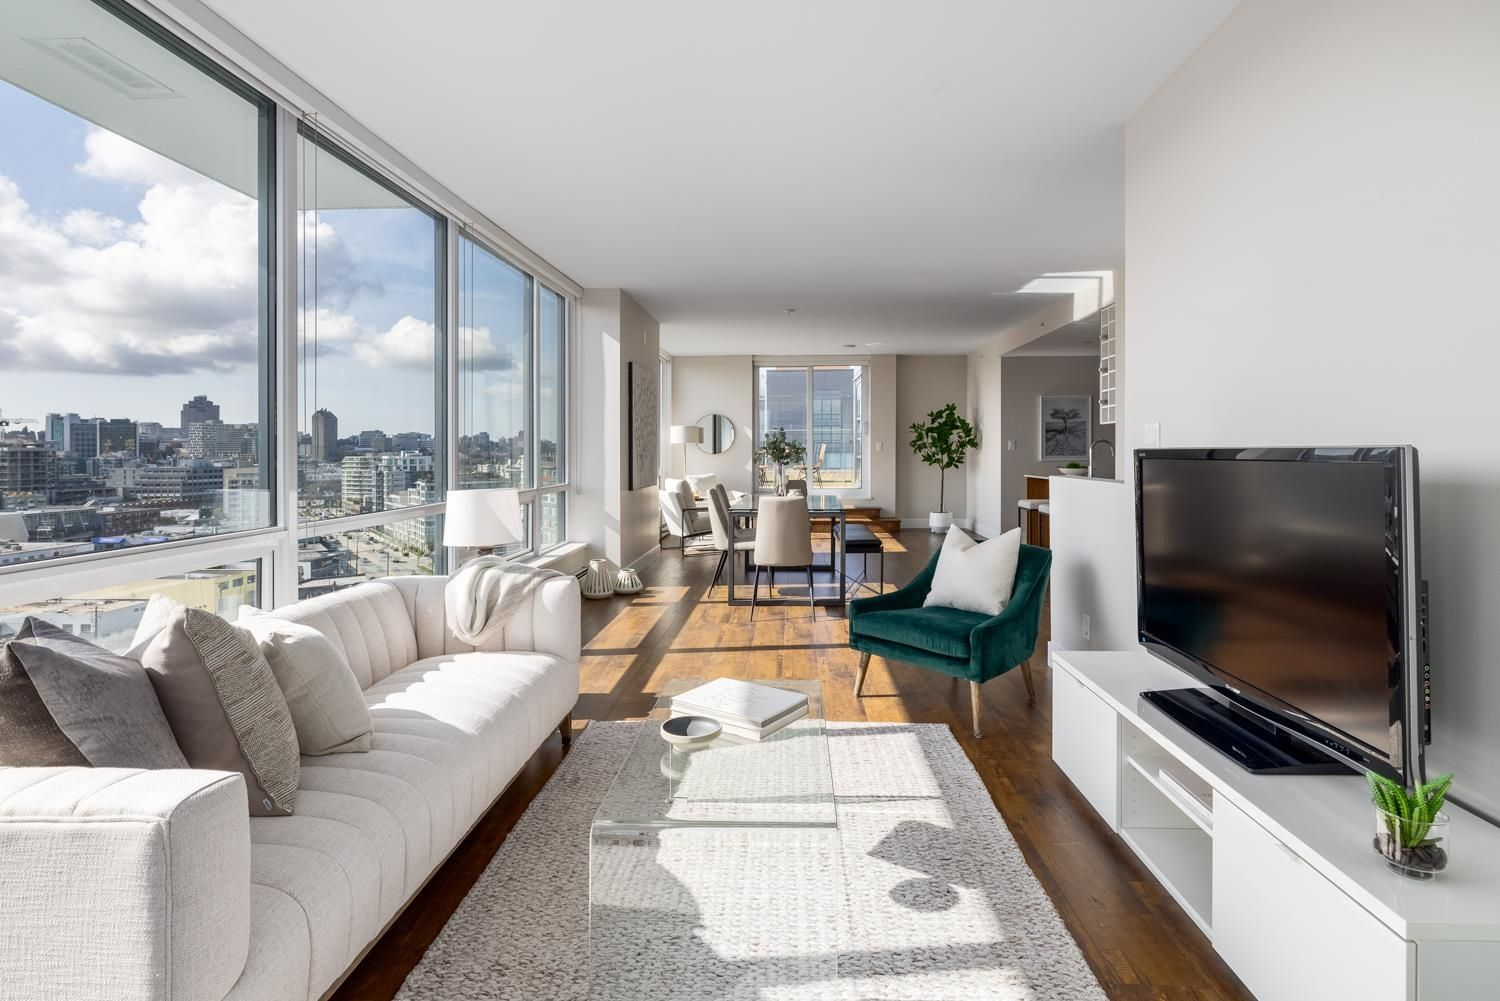 Main Photo: 1605 159 W 2ND AVENUE in Vancouver: False Creek Condo for sale (Vancouver West)  : MLS®# R2623051